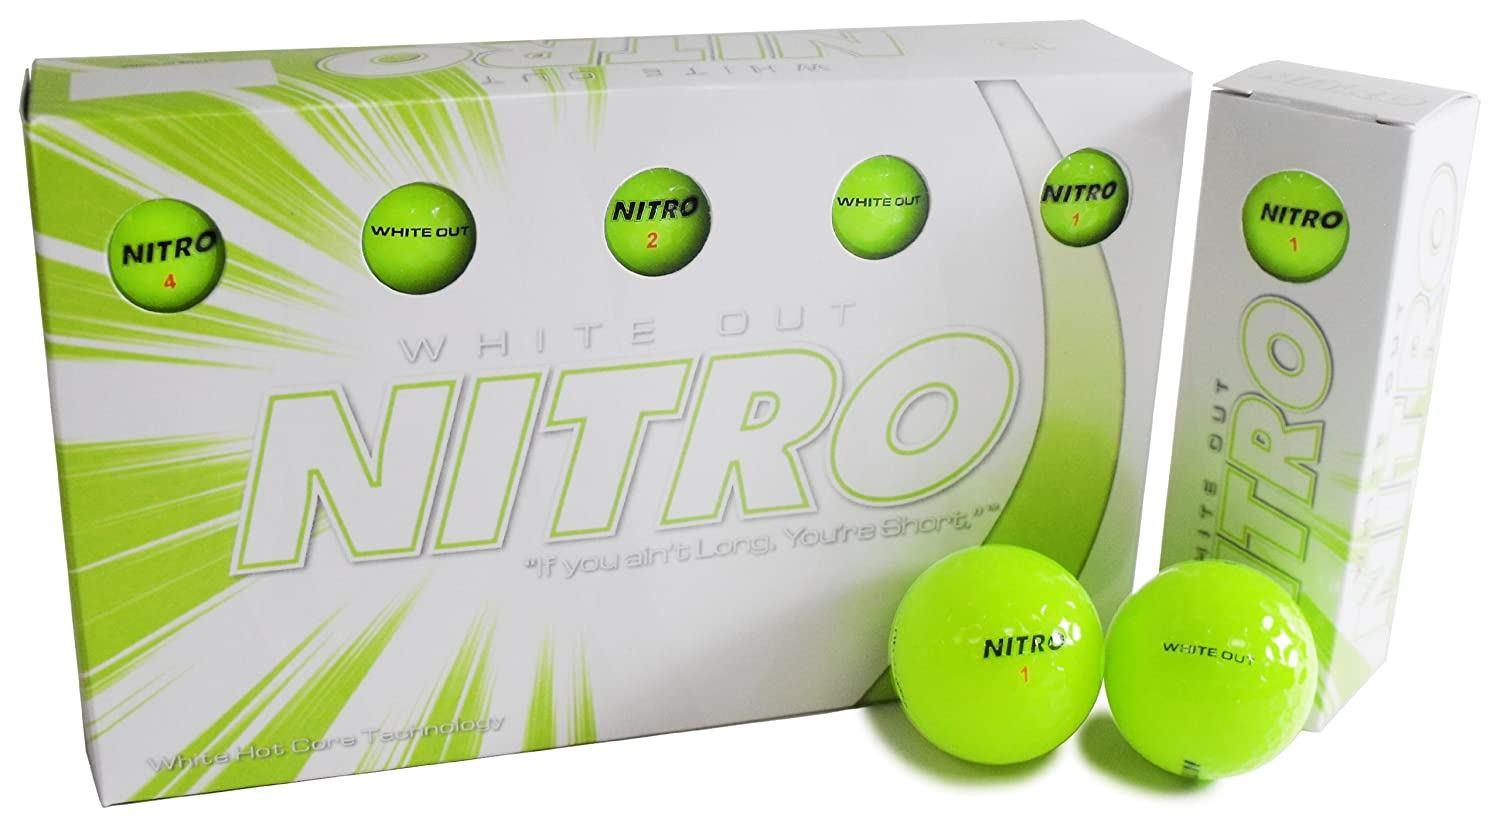 Nitro Long Distance Peak Performance Golf Balls 15PK All Levels White Out 70 Compression High Velocity White Hot Core Long Distance Golf Balls USGA Approved-Total of 15-Yellow